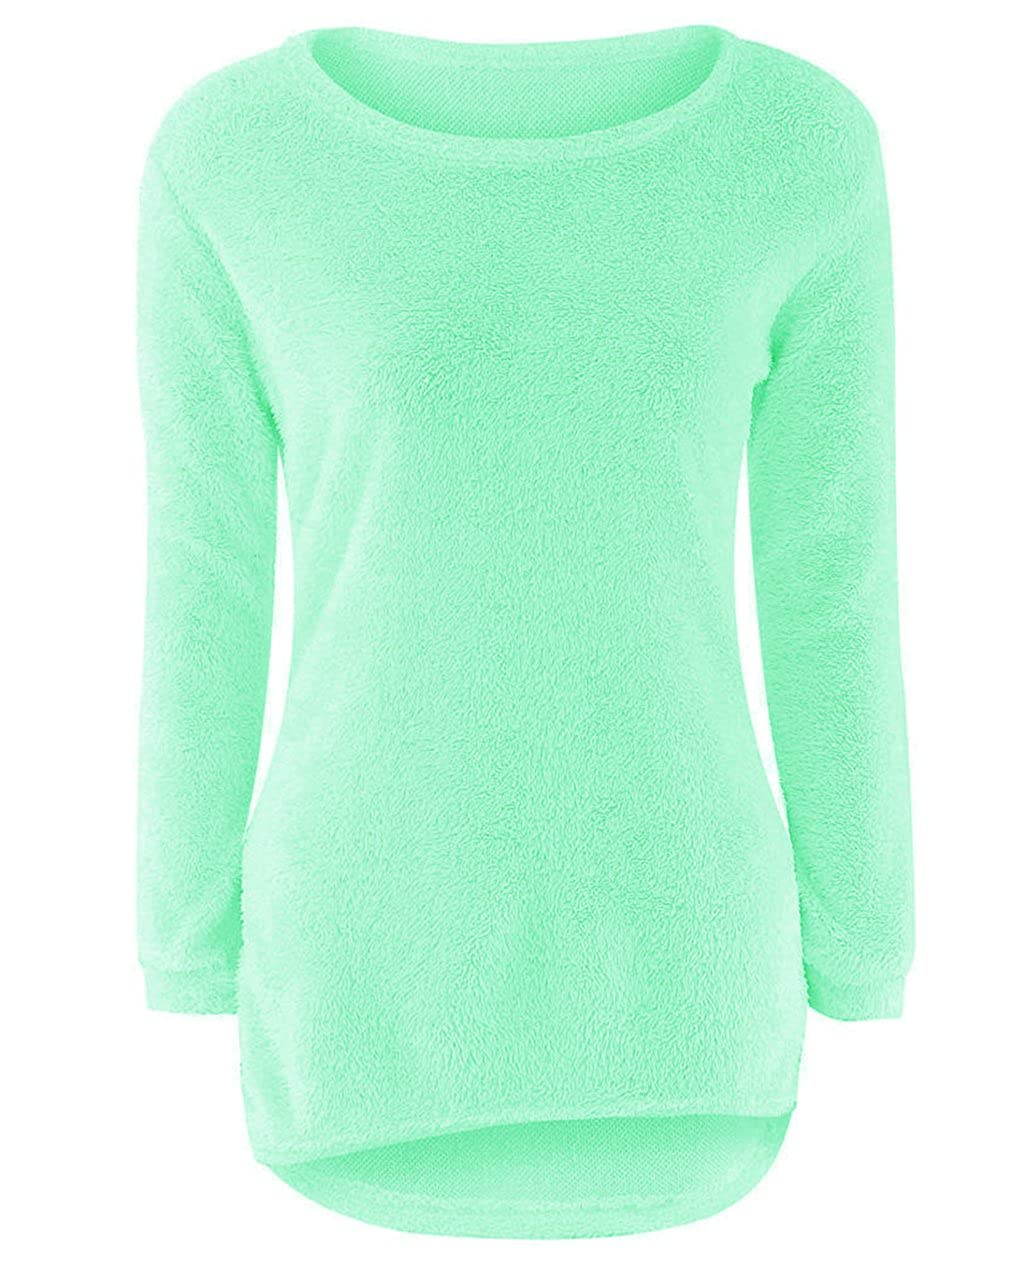 LemonGirl Womens Fashionable Long Sleeve Pullovers Loose Fluffy Fuzzy Jumper Sweater